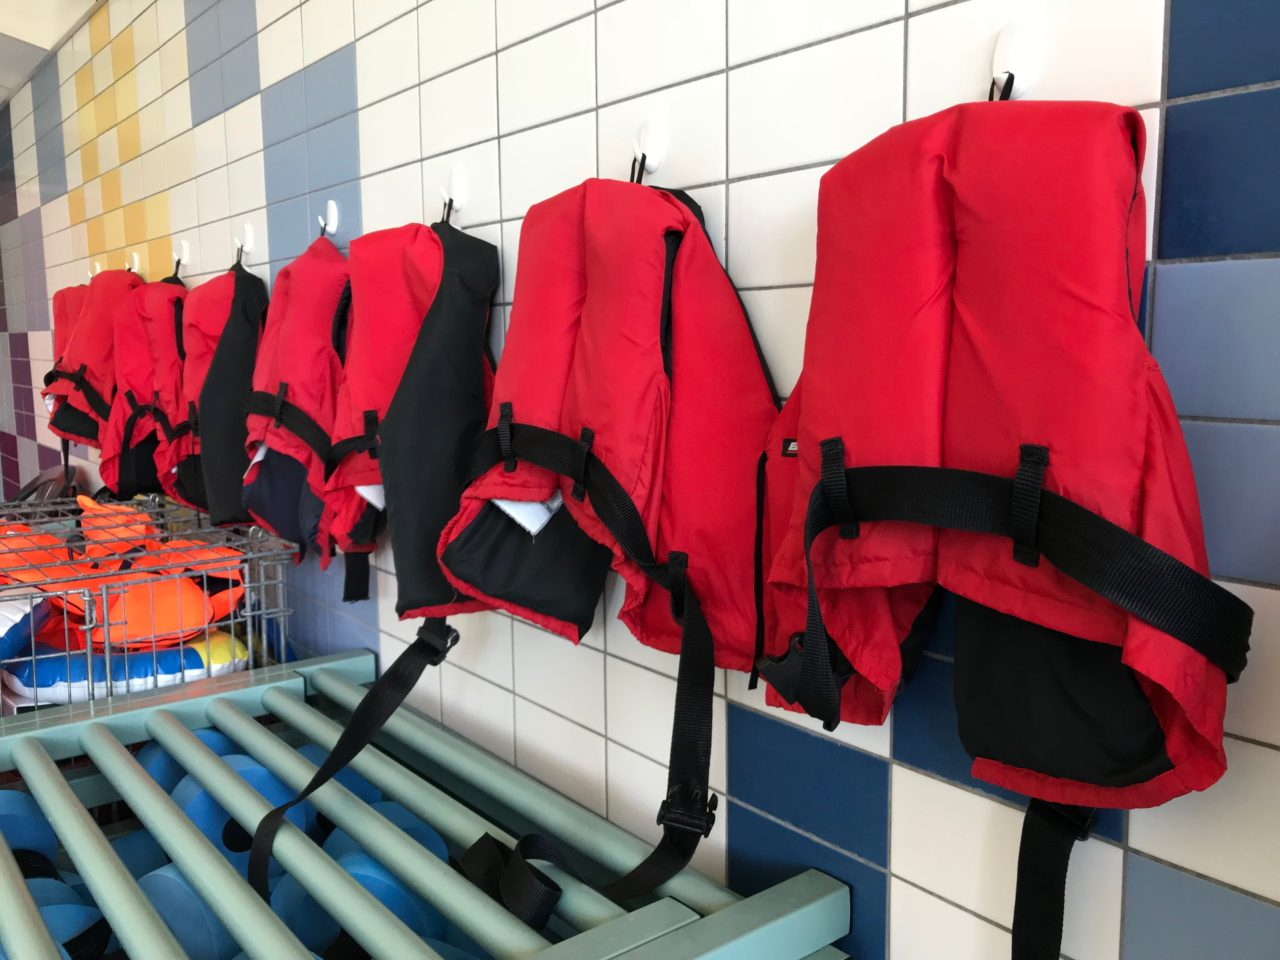 Lined Up Red Lifevests For Swimming On Wall Hangers